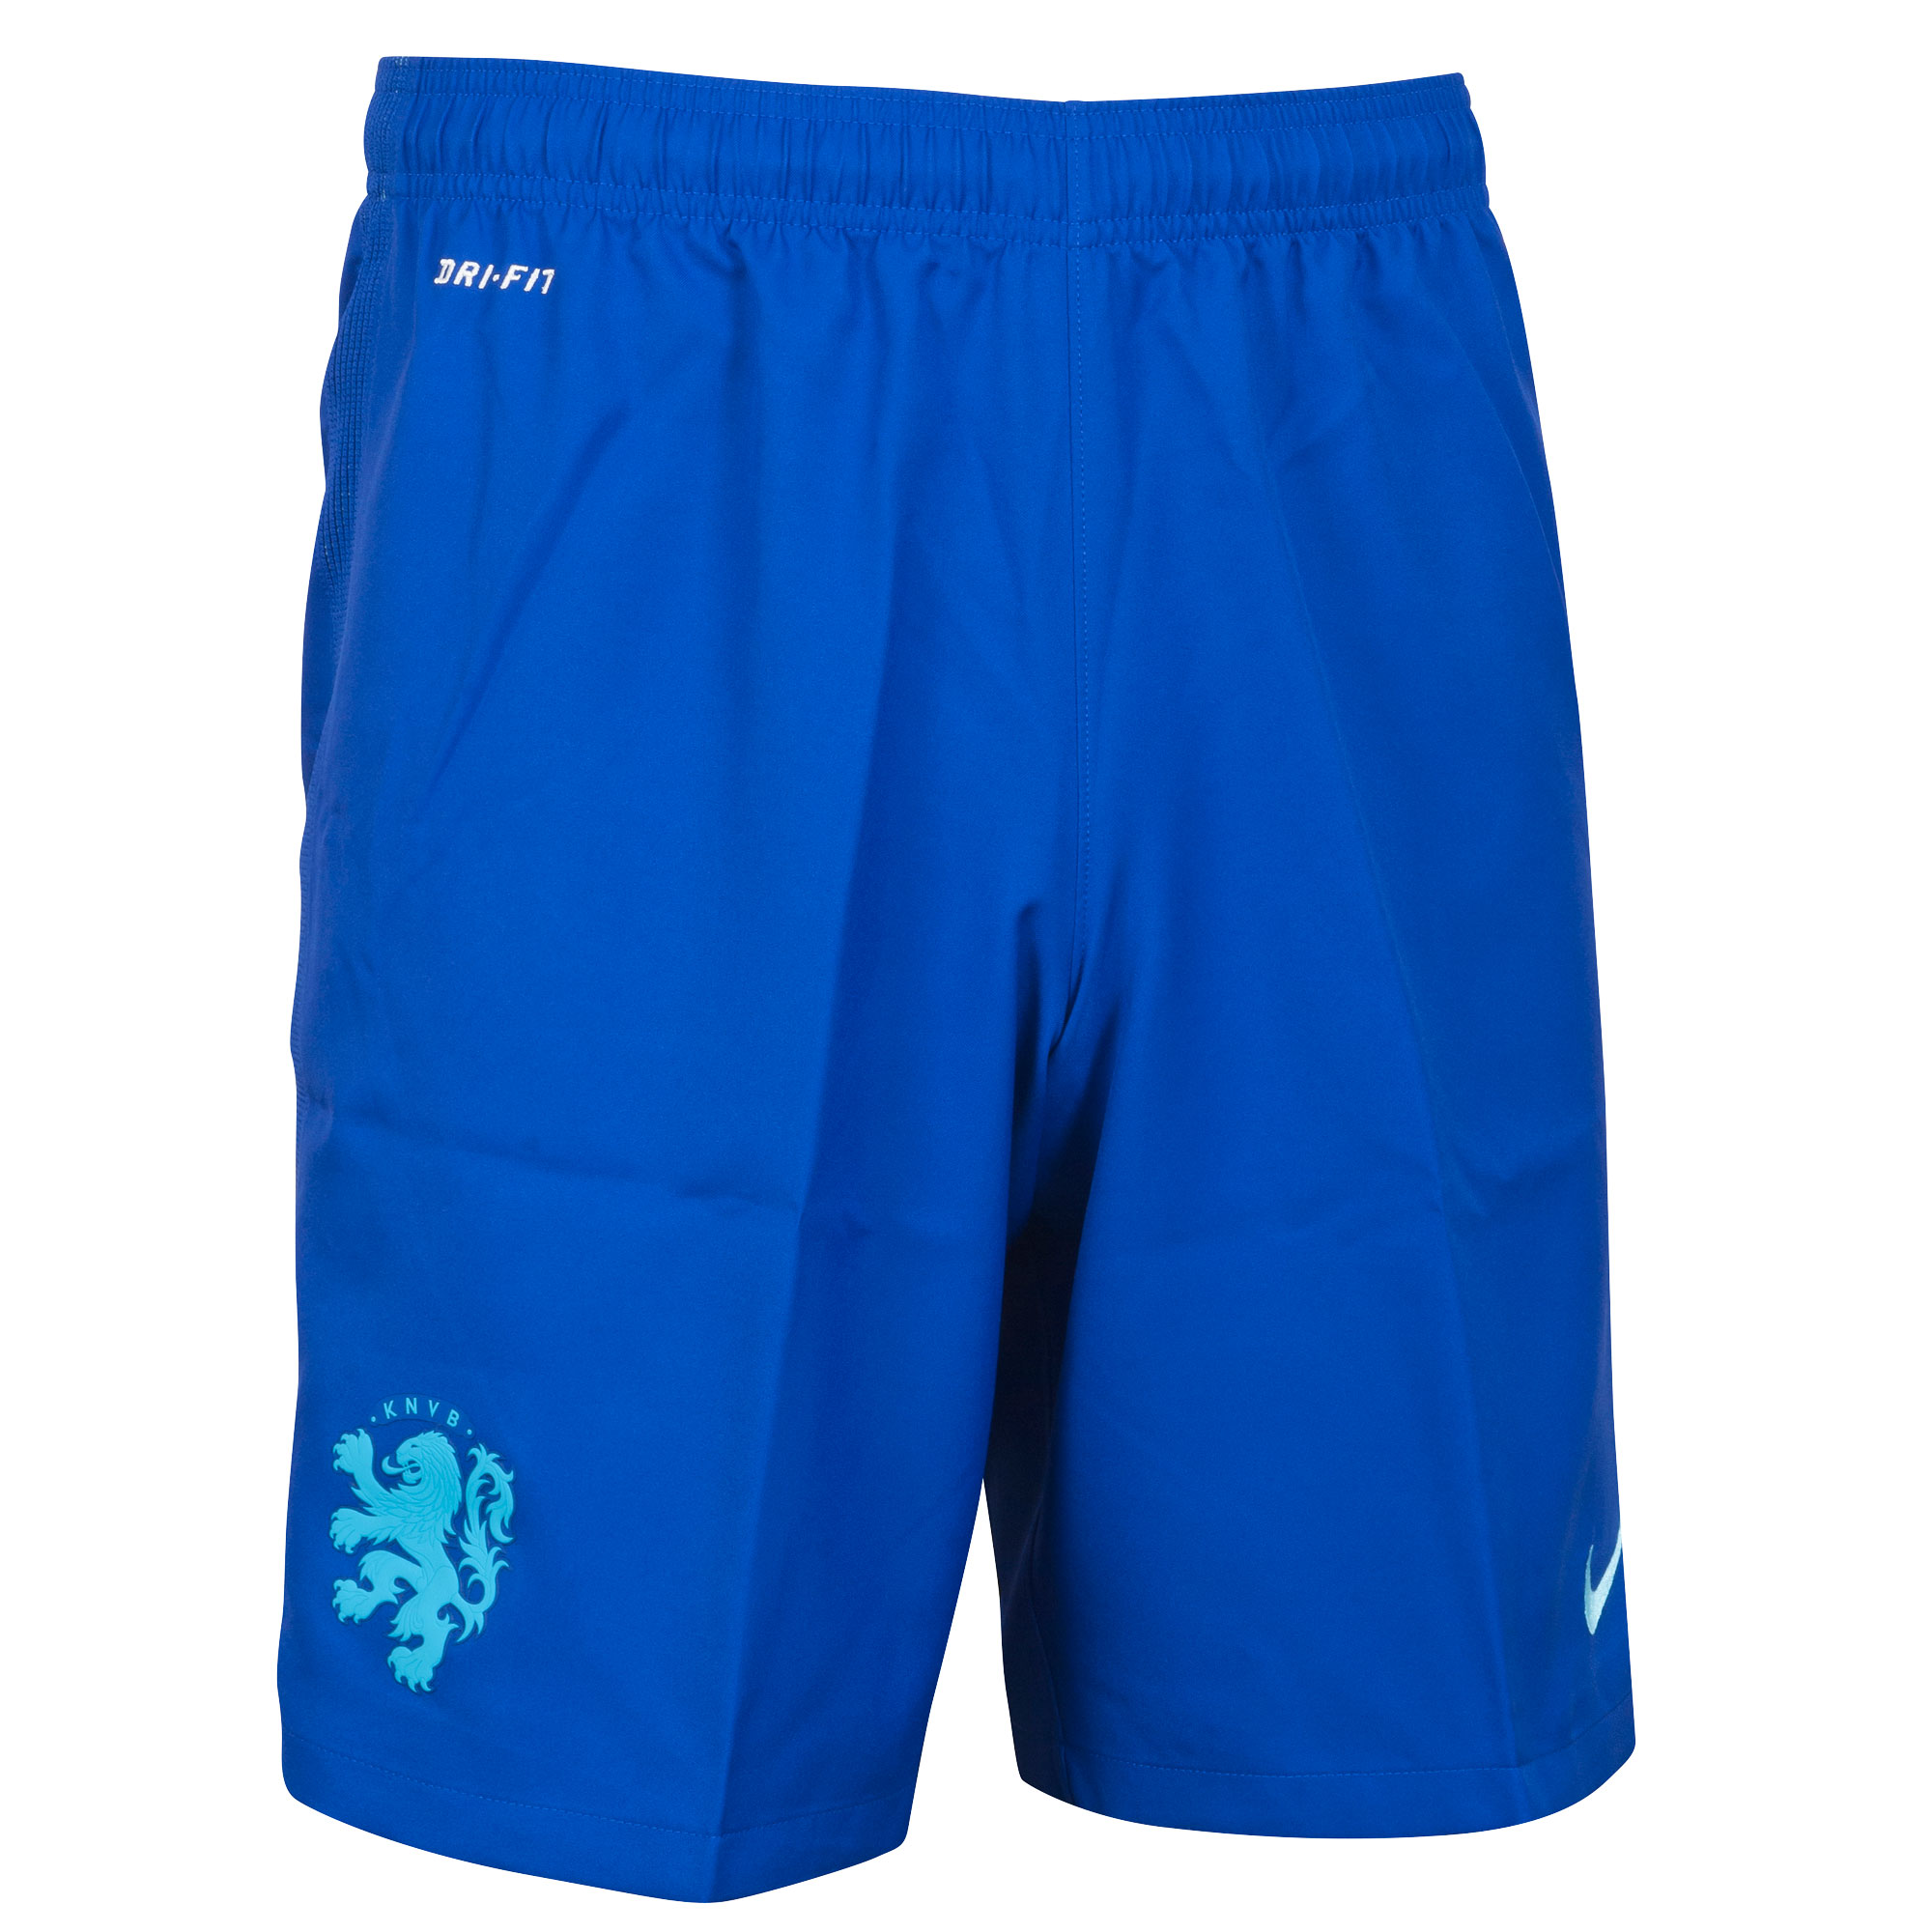 Holland Away KIDS Shorts 2016 / 2017 - 158-170